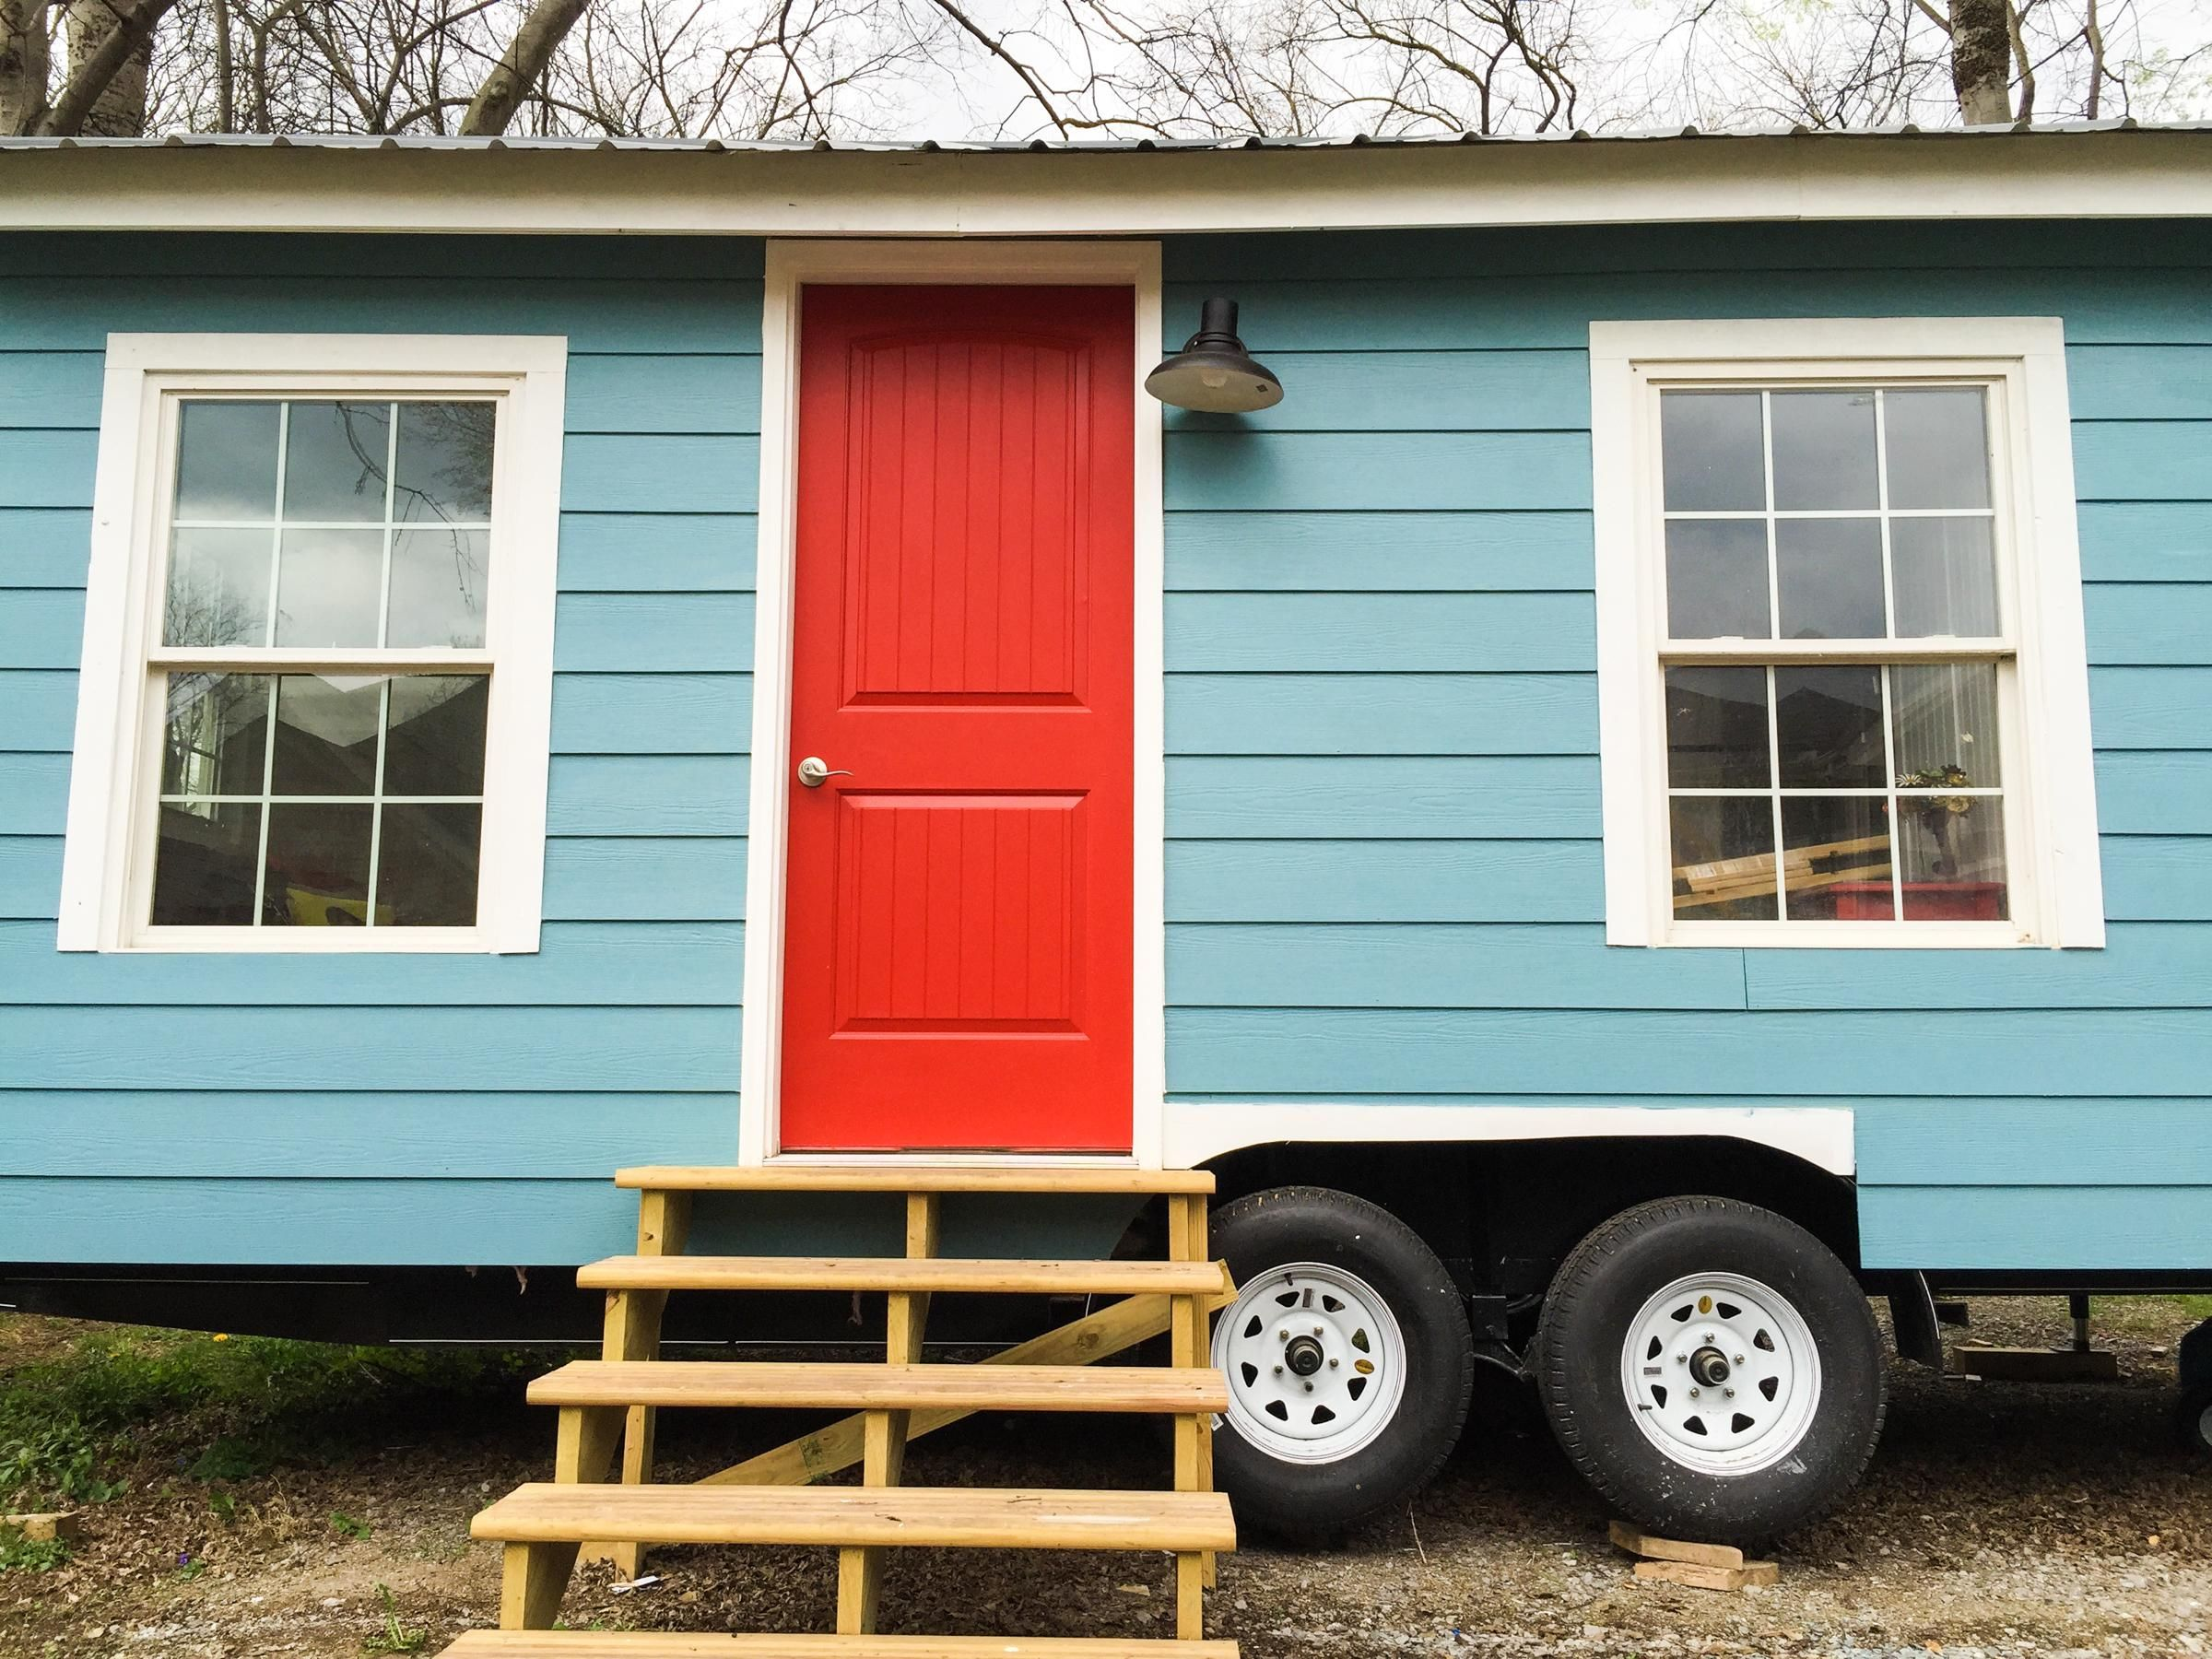 tiny turquoise house portable tiny homes tiny house swoon tiny house tiny house exterior. Black Bedroom Furniture Sets. Home Design Ideas